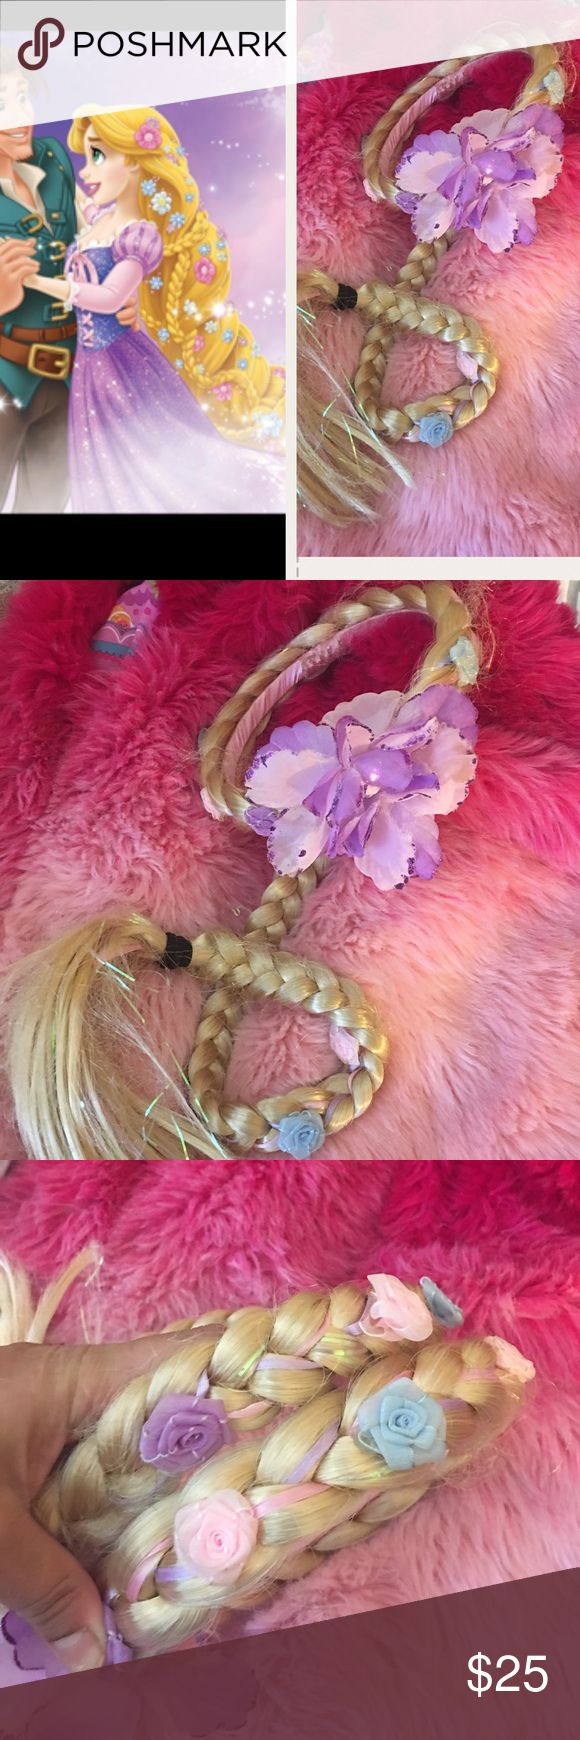 Disney Rapunzel rare braid headband/Tiara Rare hard to find from original Disney store Disney princess Rapunzel long braid headband tiara.. Some parts of braid is messed up but really don't bother. You can set them up with hair pins.. Disney Accessories Hair Accessories